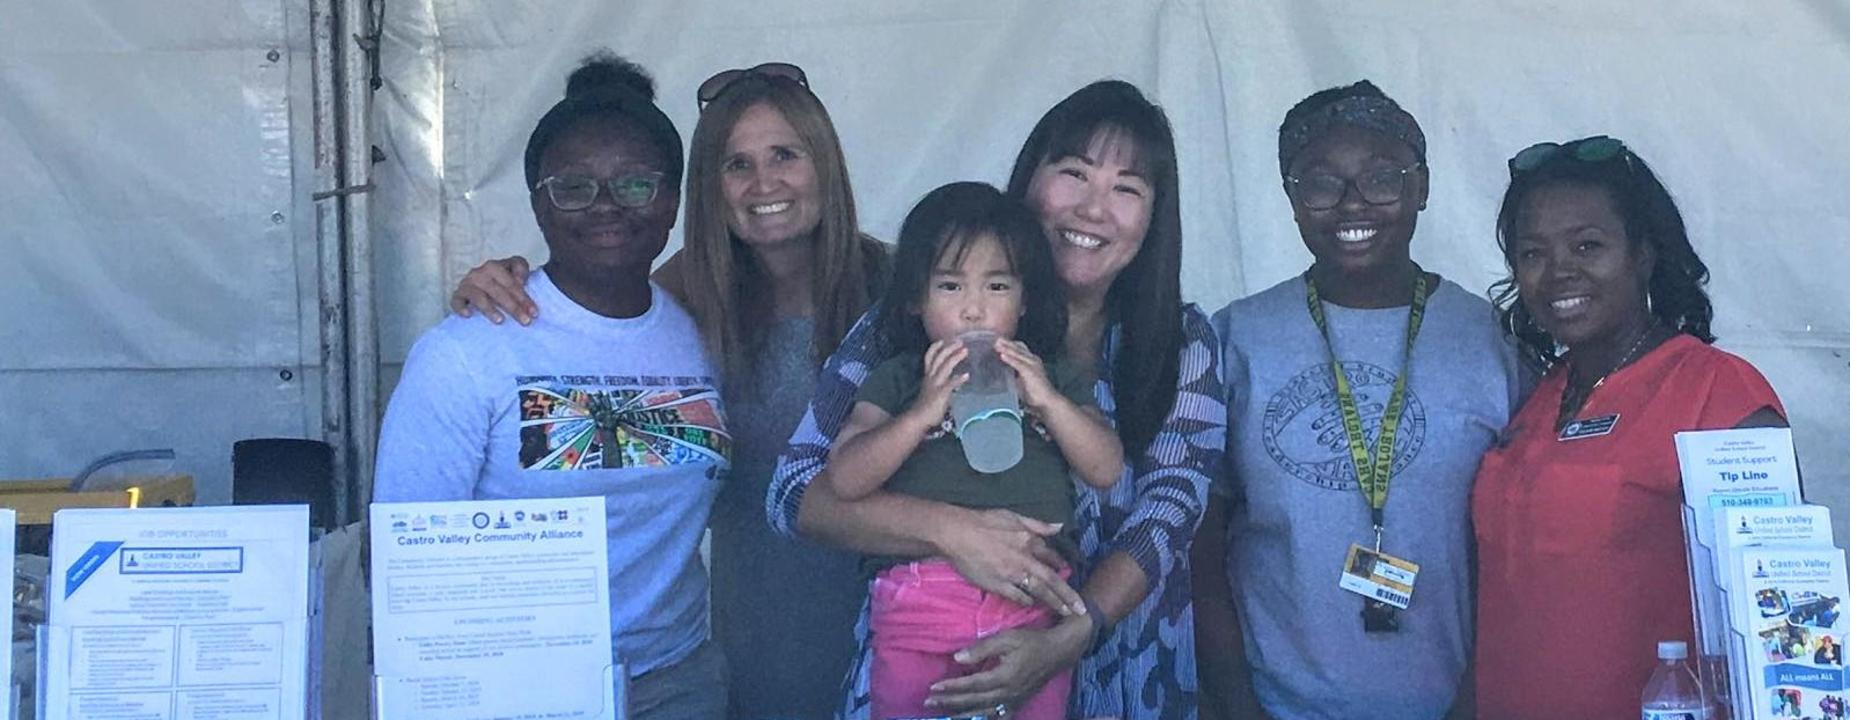 photo of staff at Fall Festival